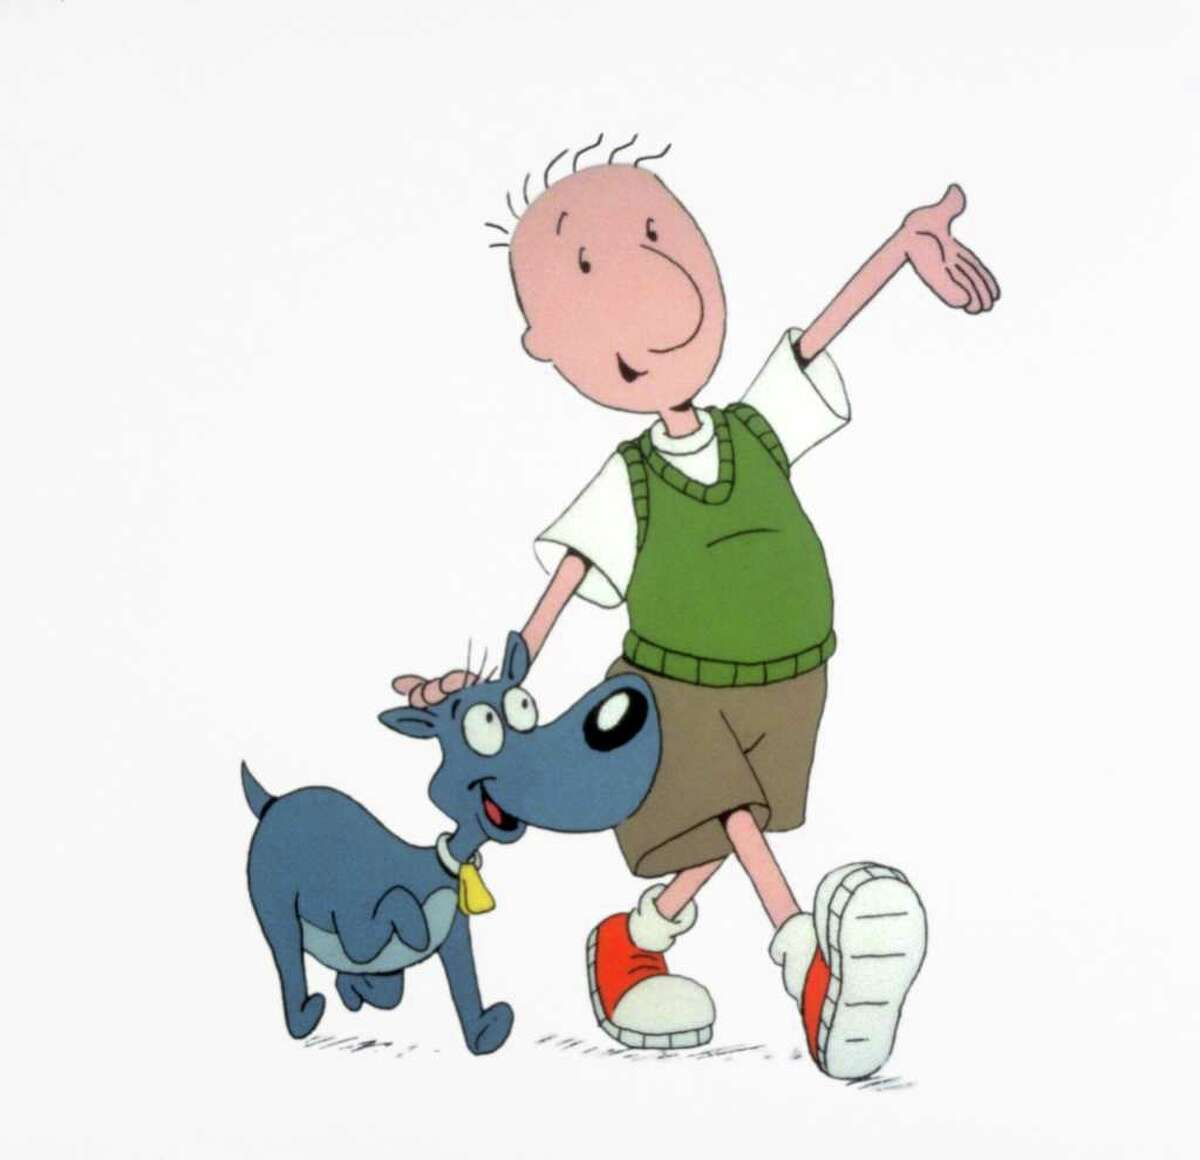 Nickelodeon REMEMBER WHEN: Doug Funnie in Doug, part of TeenNick's The '90s Are All That programming block.